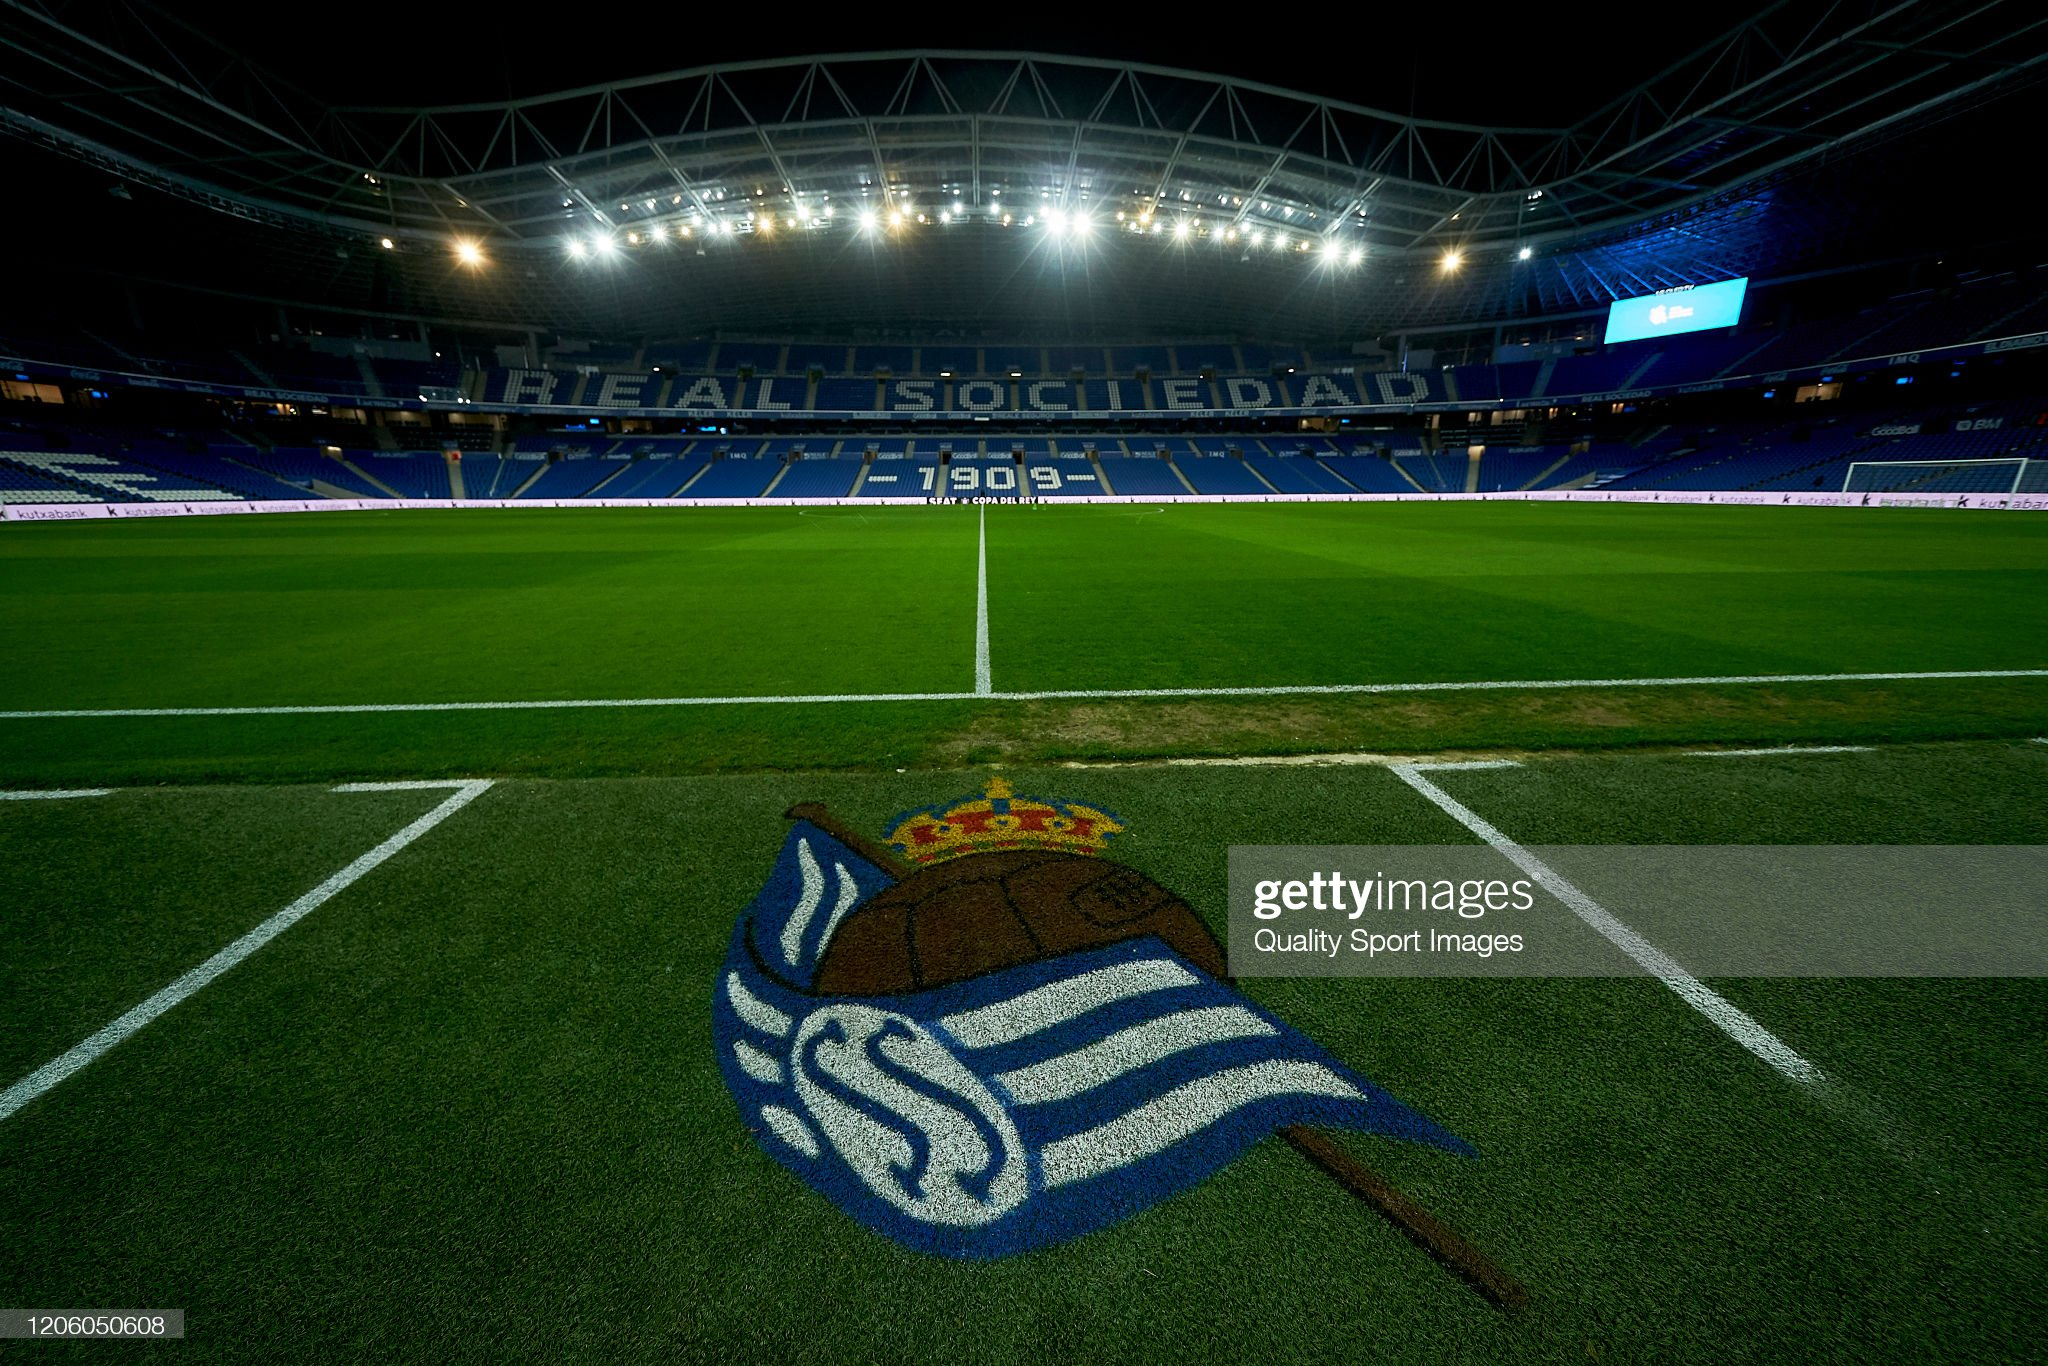 Real Sociedad vs Napoli Preview, prediction and odds